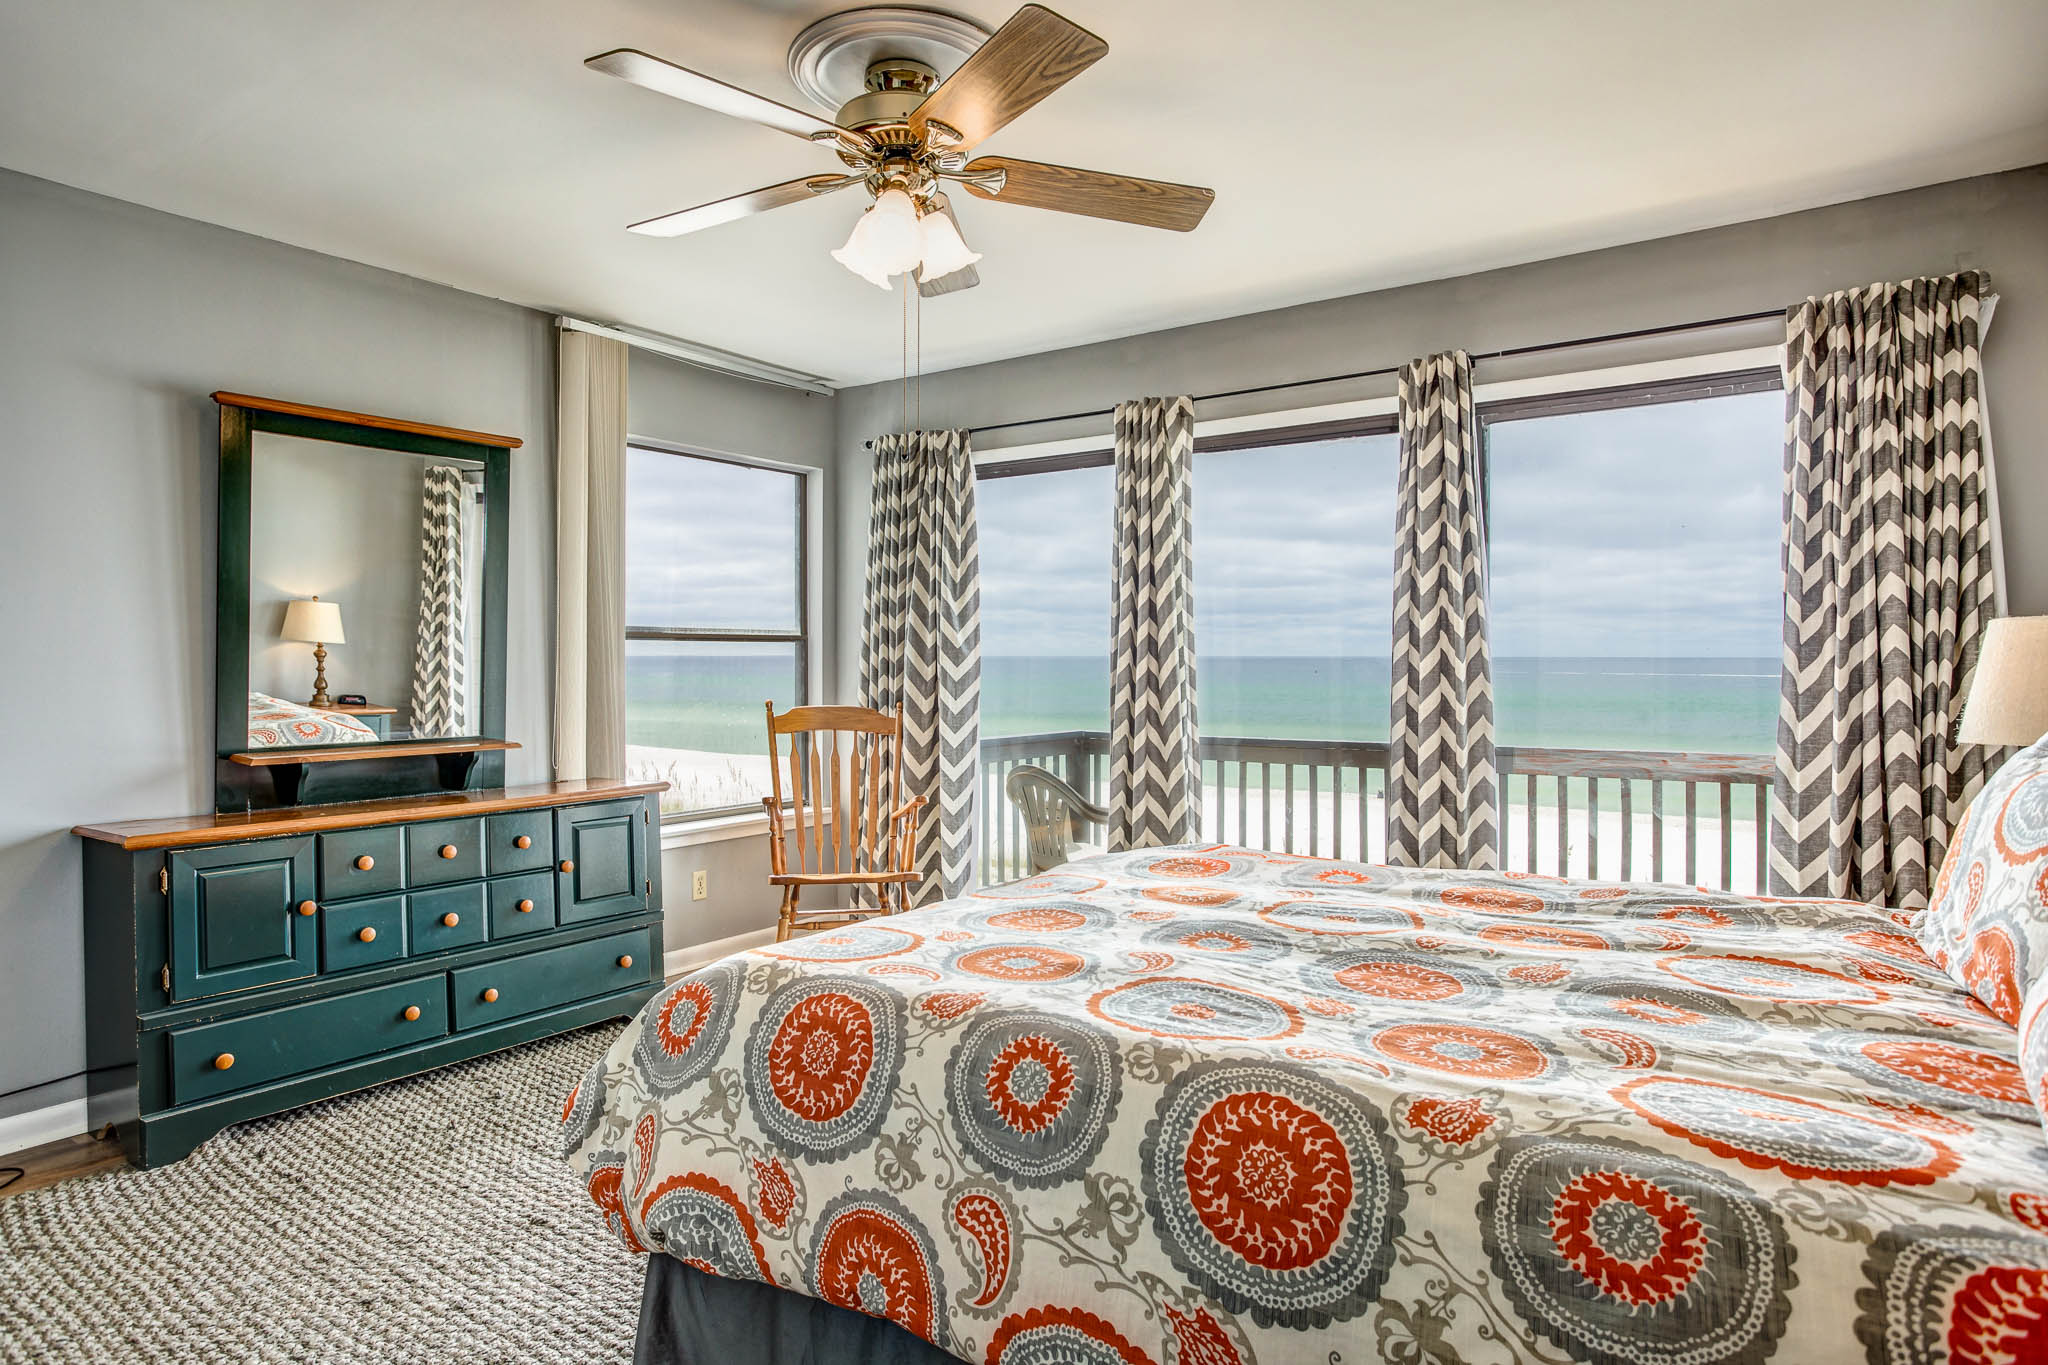 Maison unifamiliale pour l Vente à FURNISHED WEST END TOWNHOME WITH GULF VIEWS 20643 Front Beach Road Panama City Beach, Florida, 32413 États-Unis